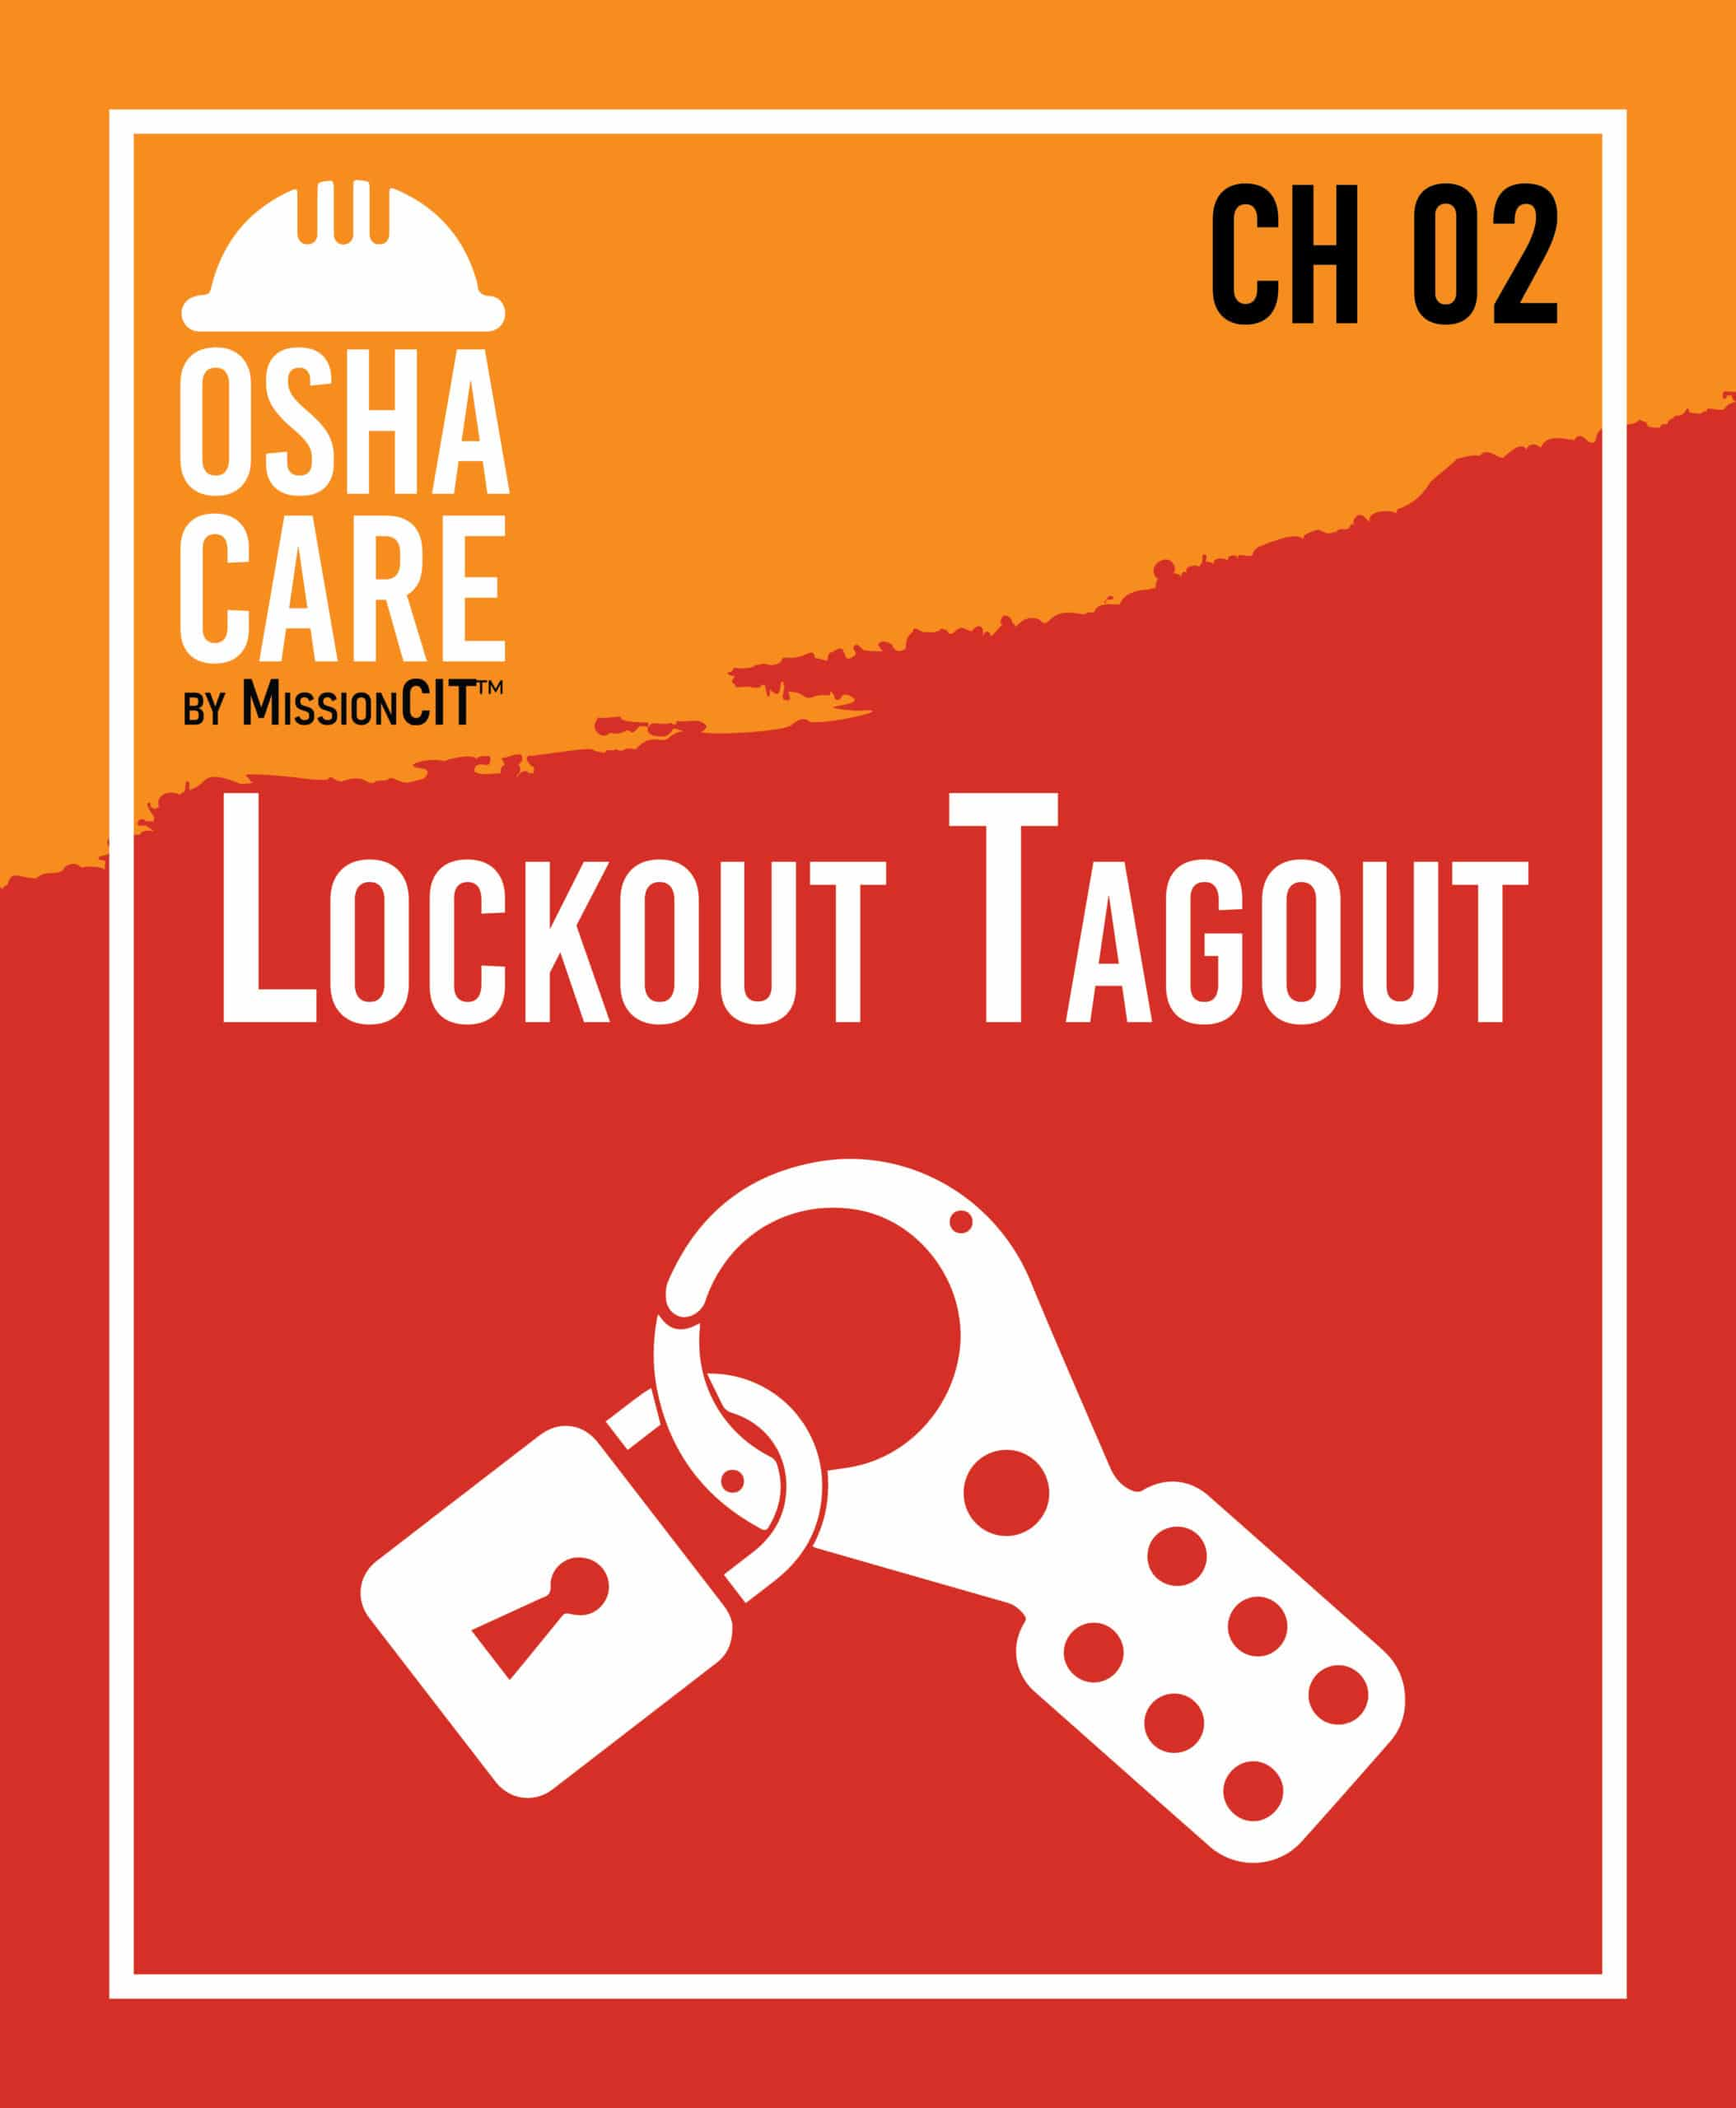 OSHA Training | Lockout Tagout | Lockout Tagout Procedures | OSHA loto standard | Isolating the Equipment | Releasing Stored Energy